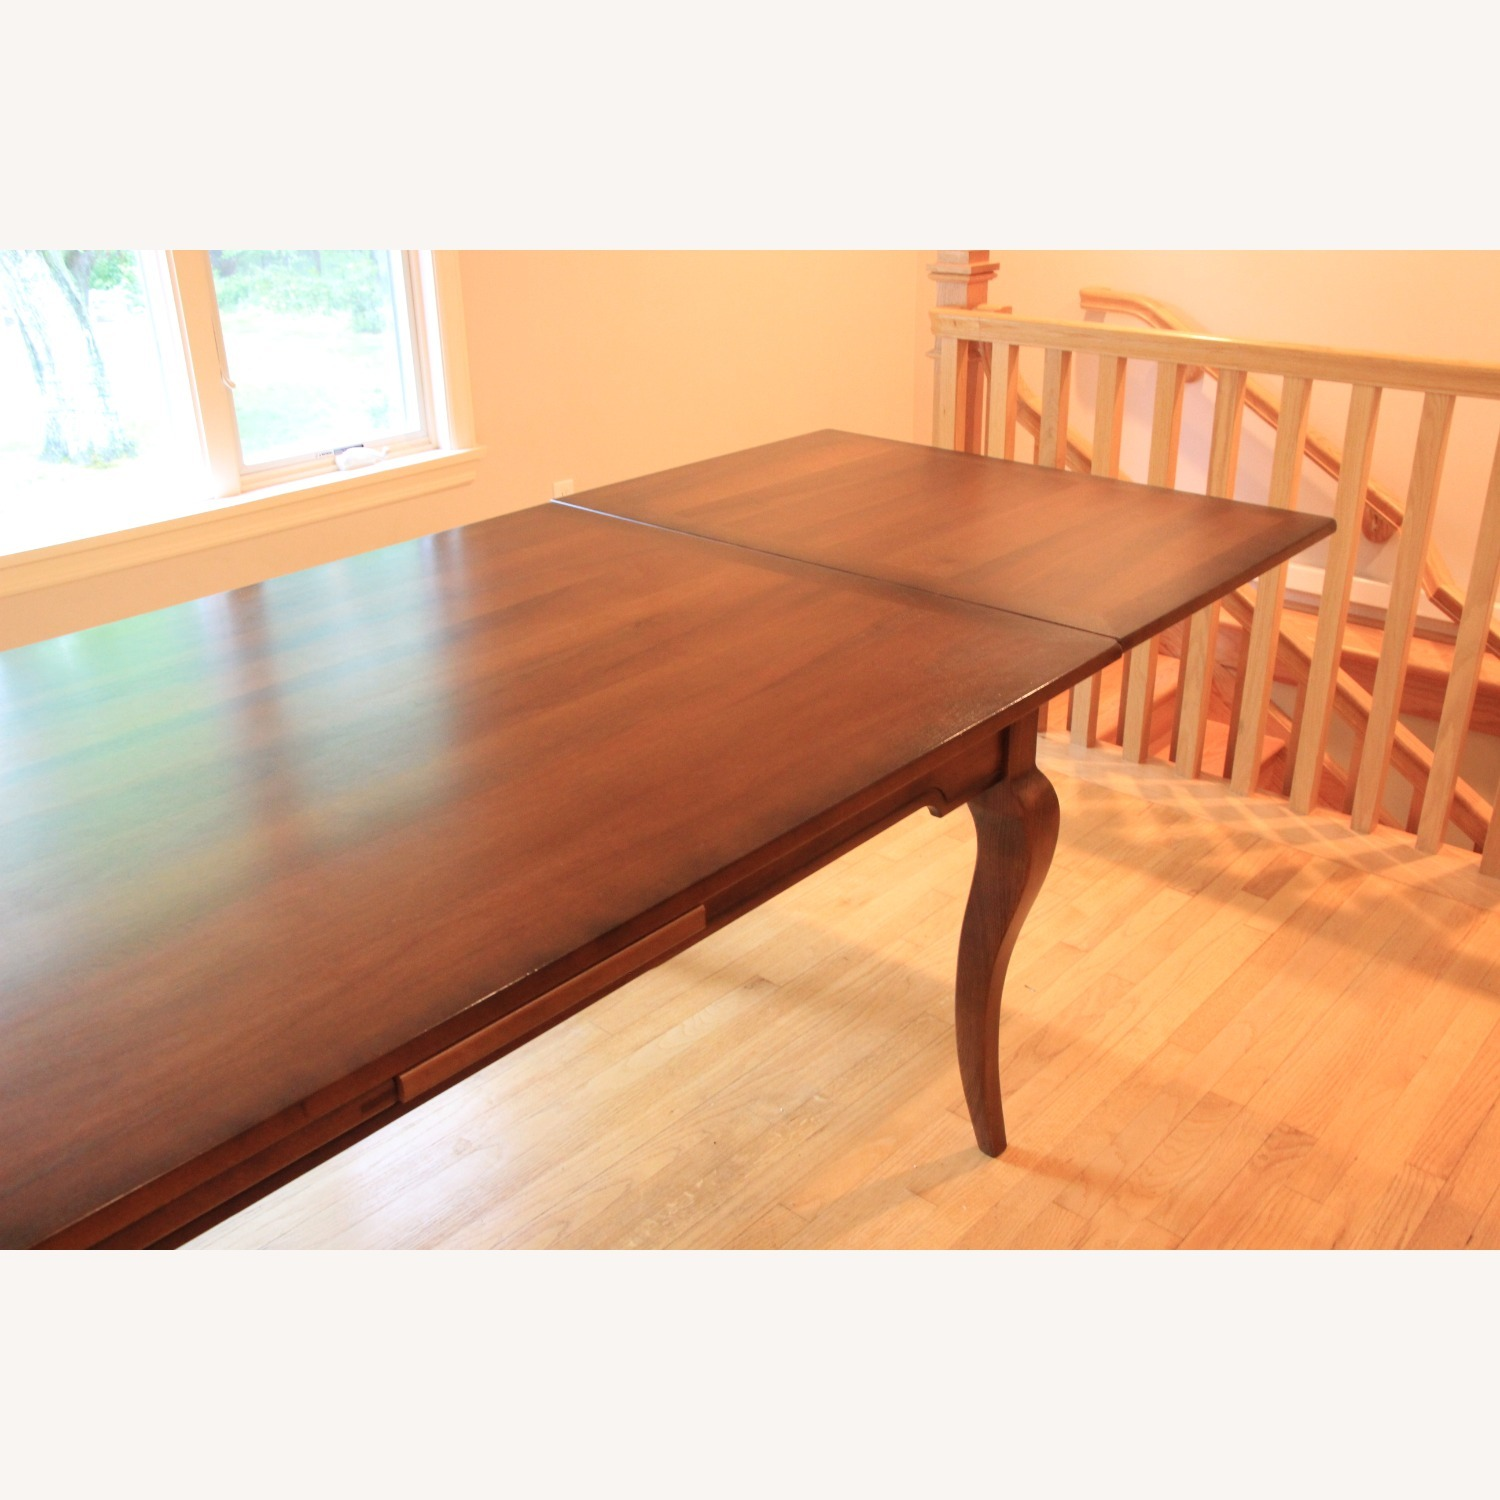 Arhaus Maple Dining Table and Chairs - image-2